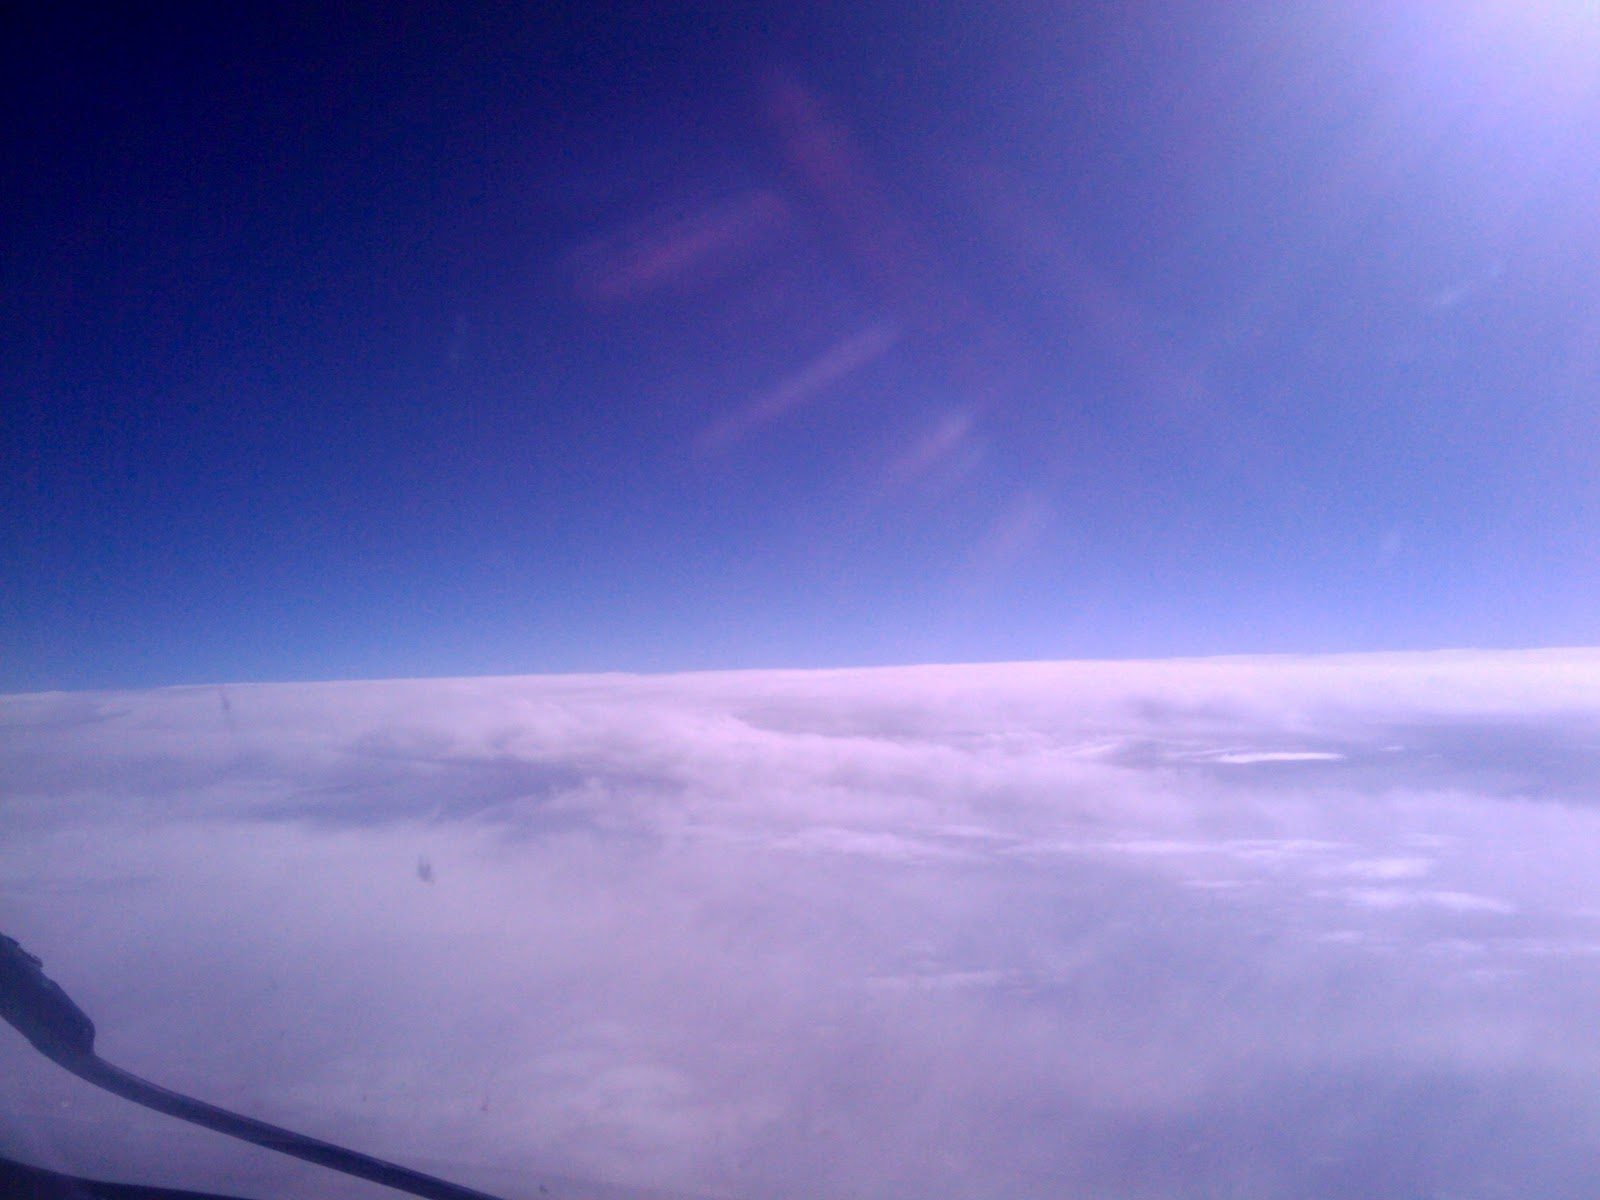 Airplane Window View of Clouds